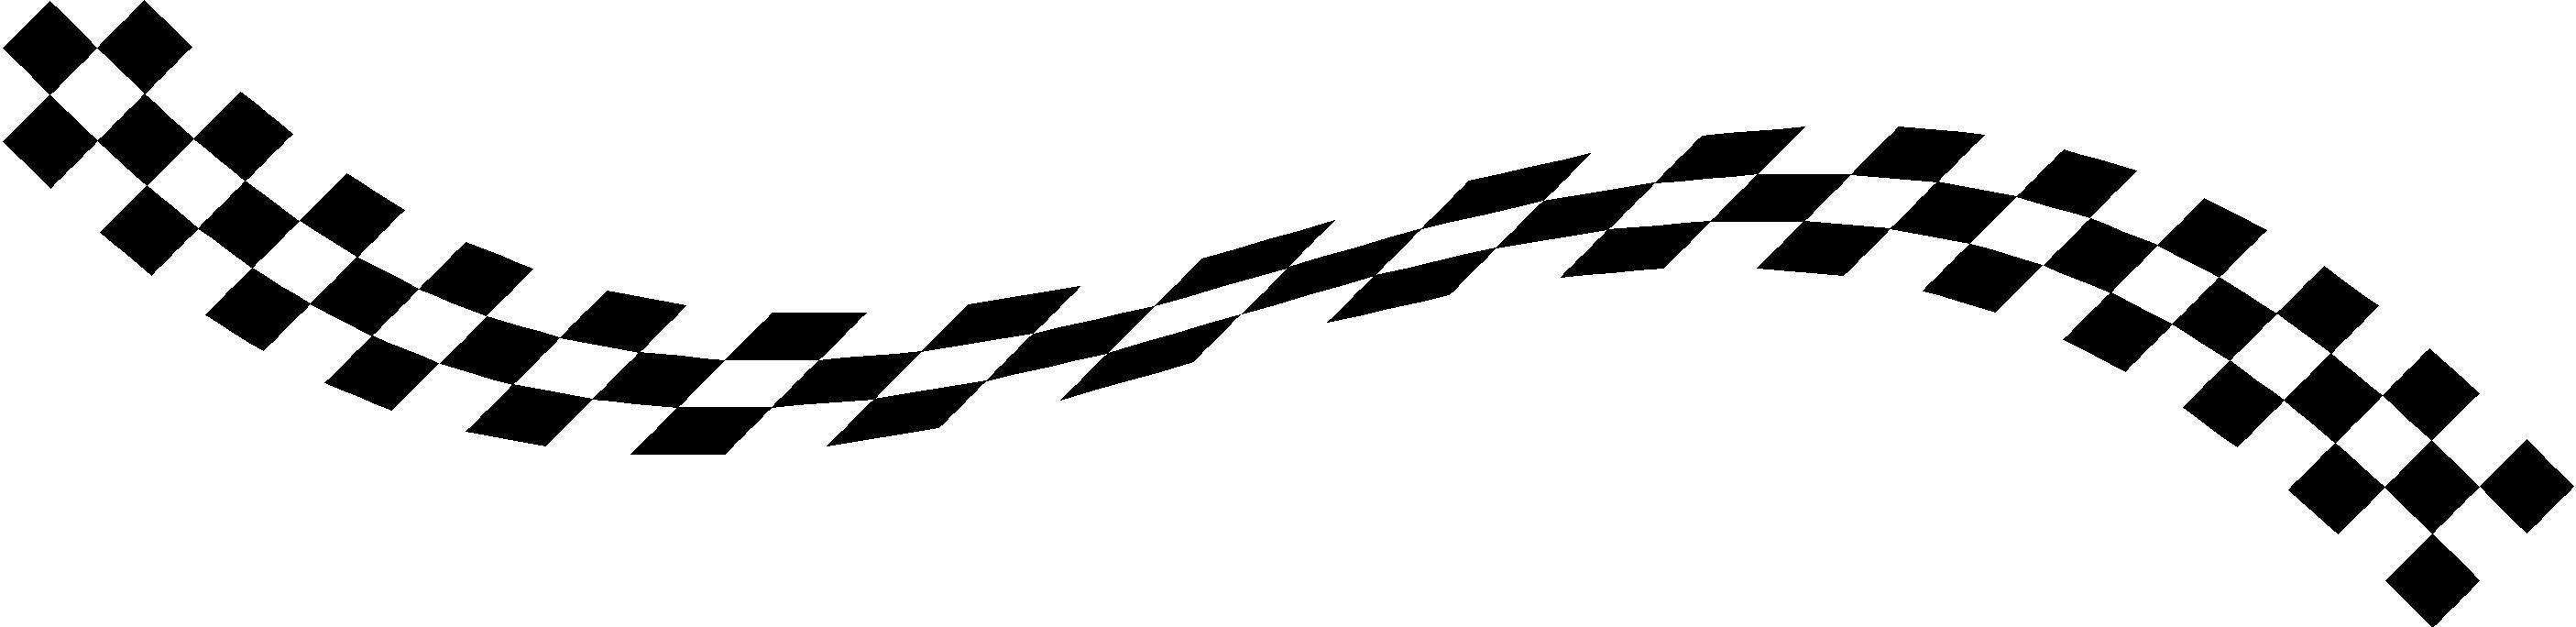 Chequered Flag Banner